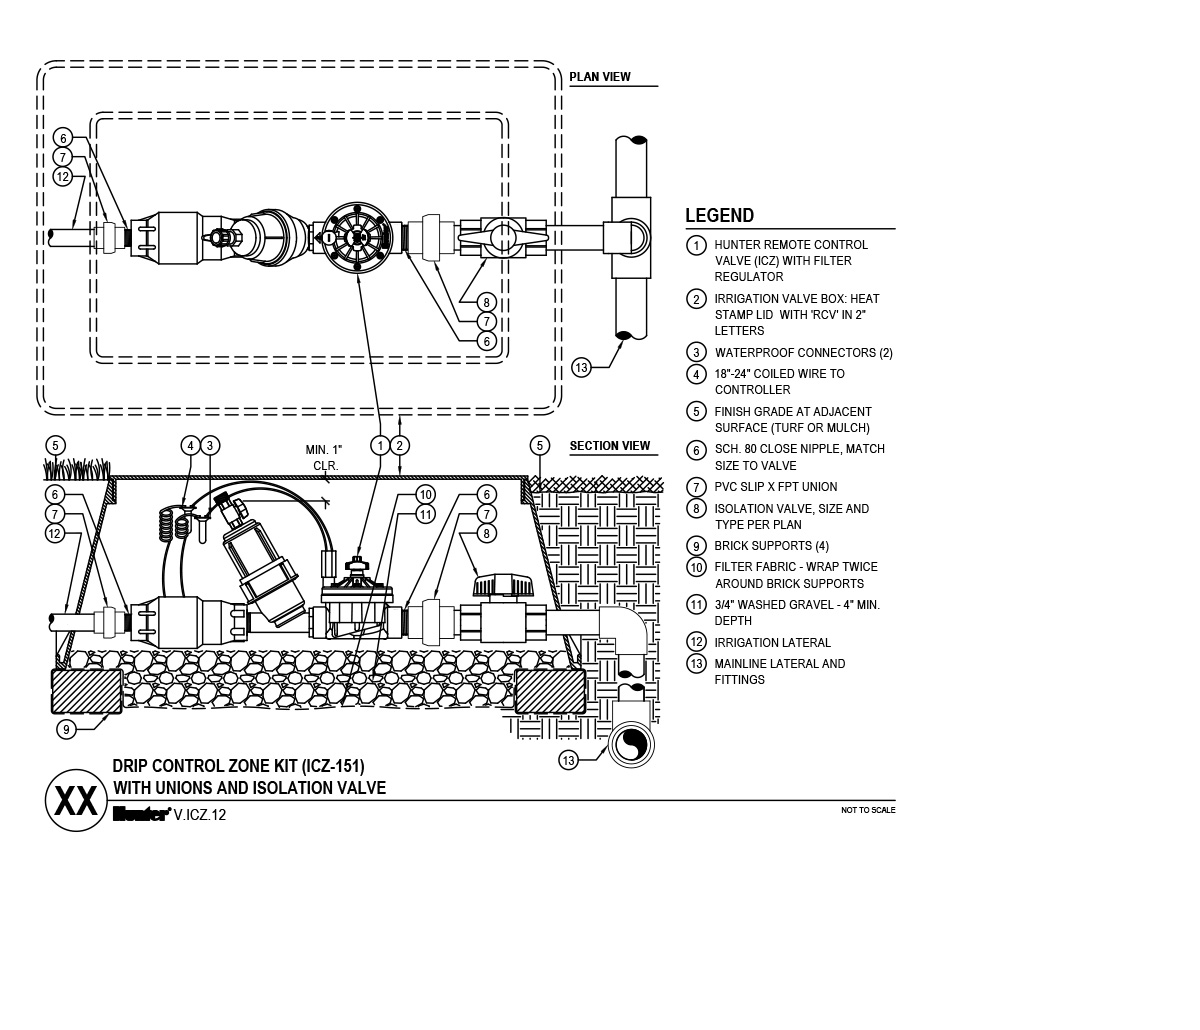 CAD - Drip Control Zone Kit (ICZ-151) with unions and isolation valve